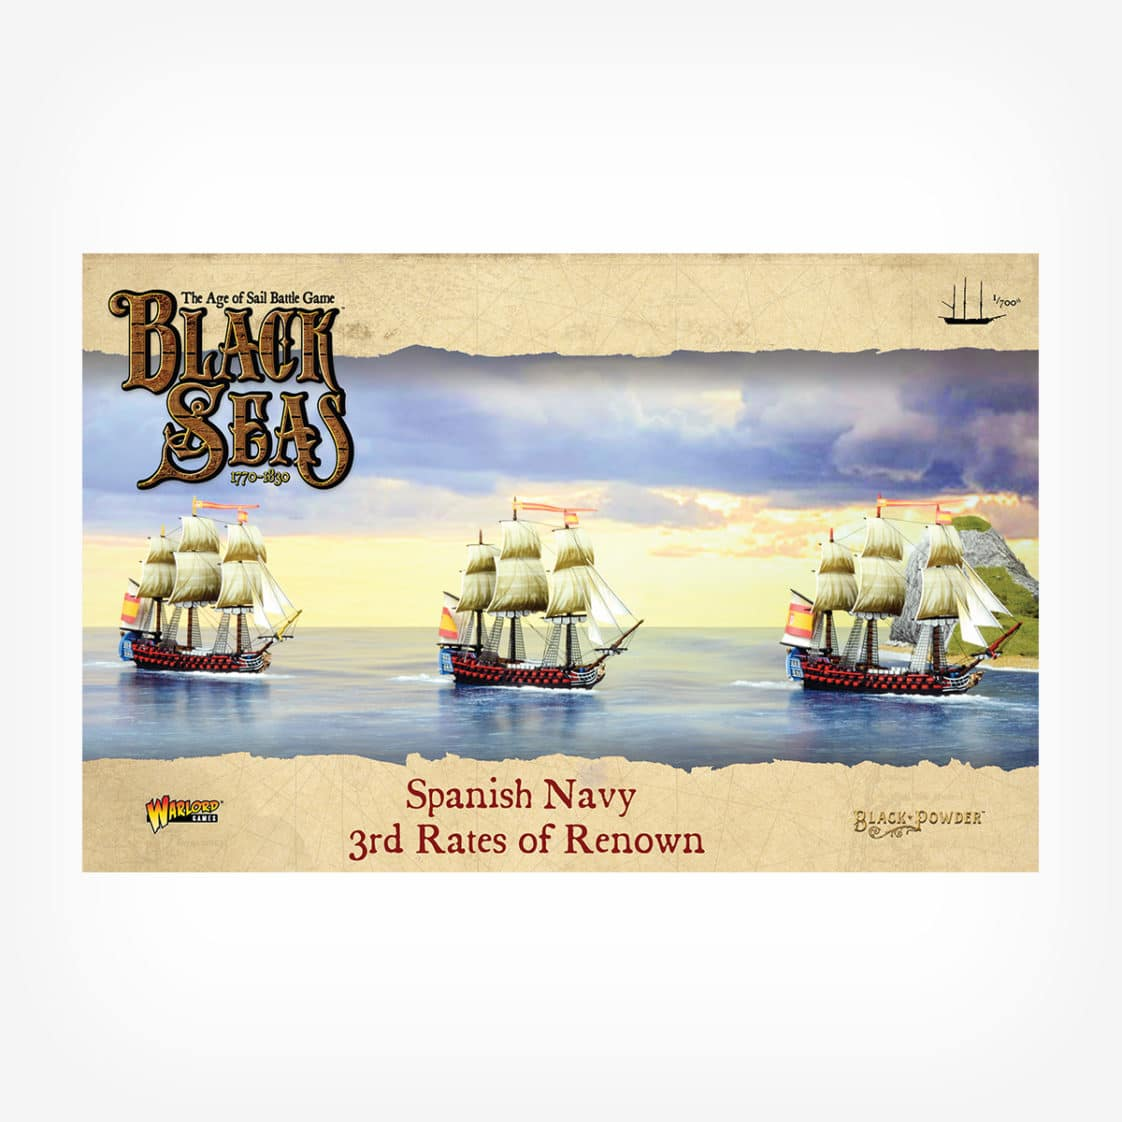 Spanish Navy 3rd Rates of Renown